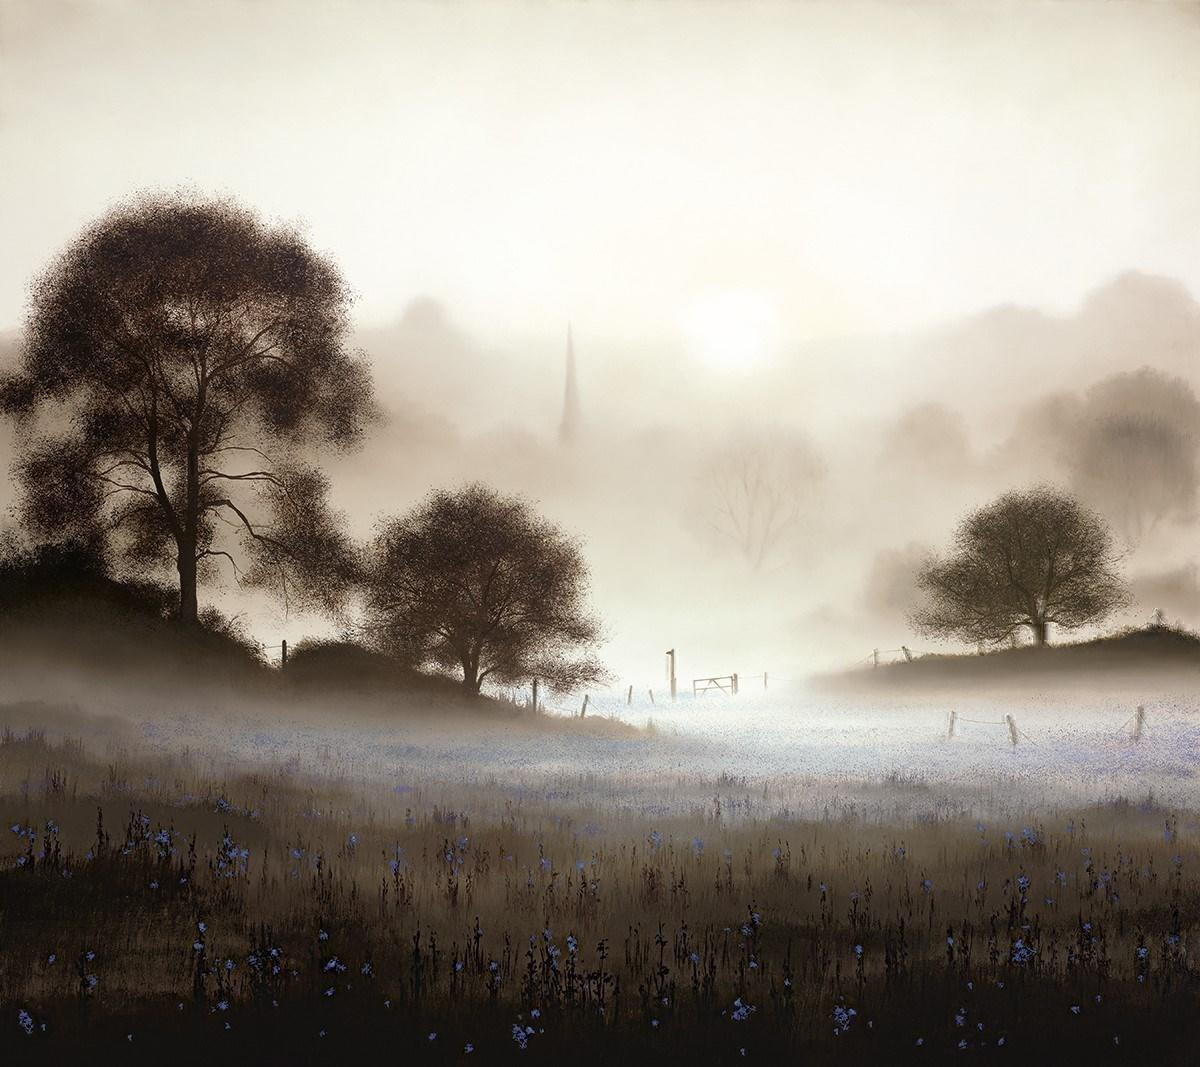 Sunday Morning by John Waterhouse - Limited Edition art print ZWTR066